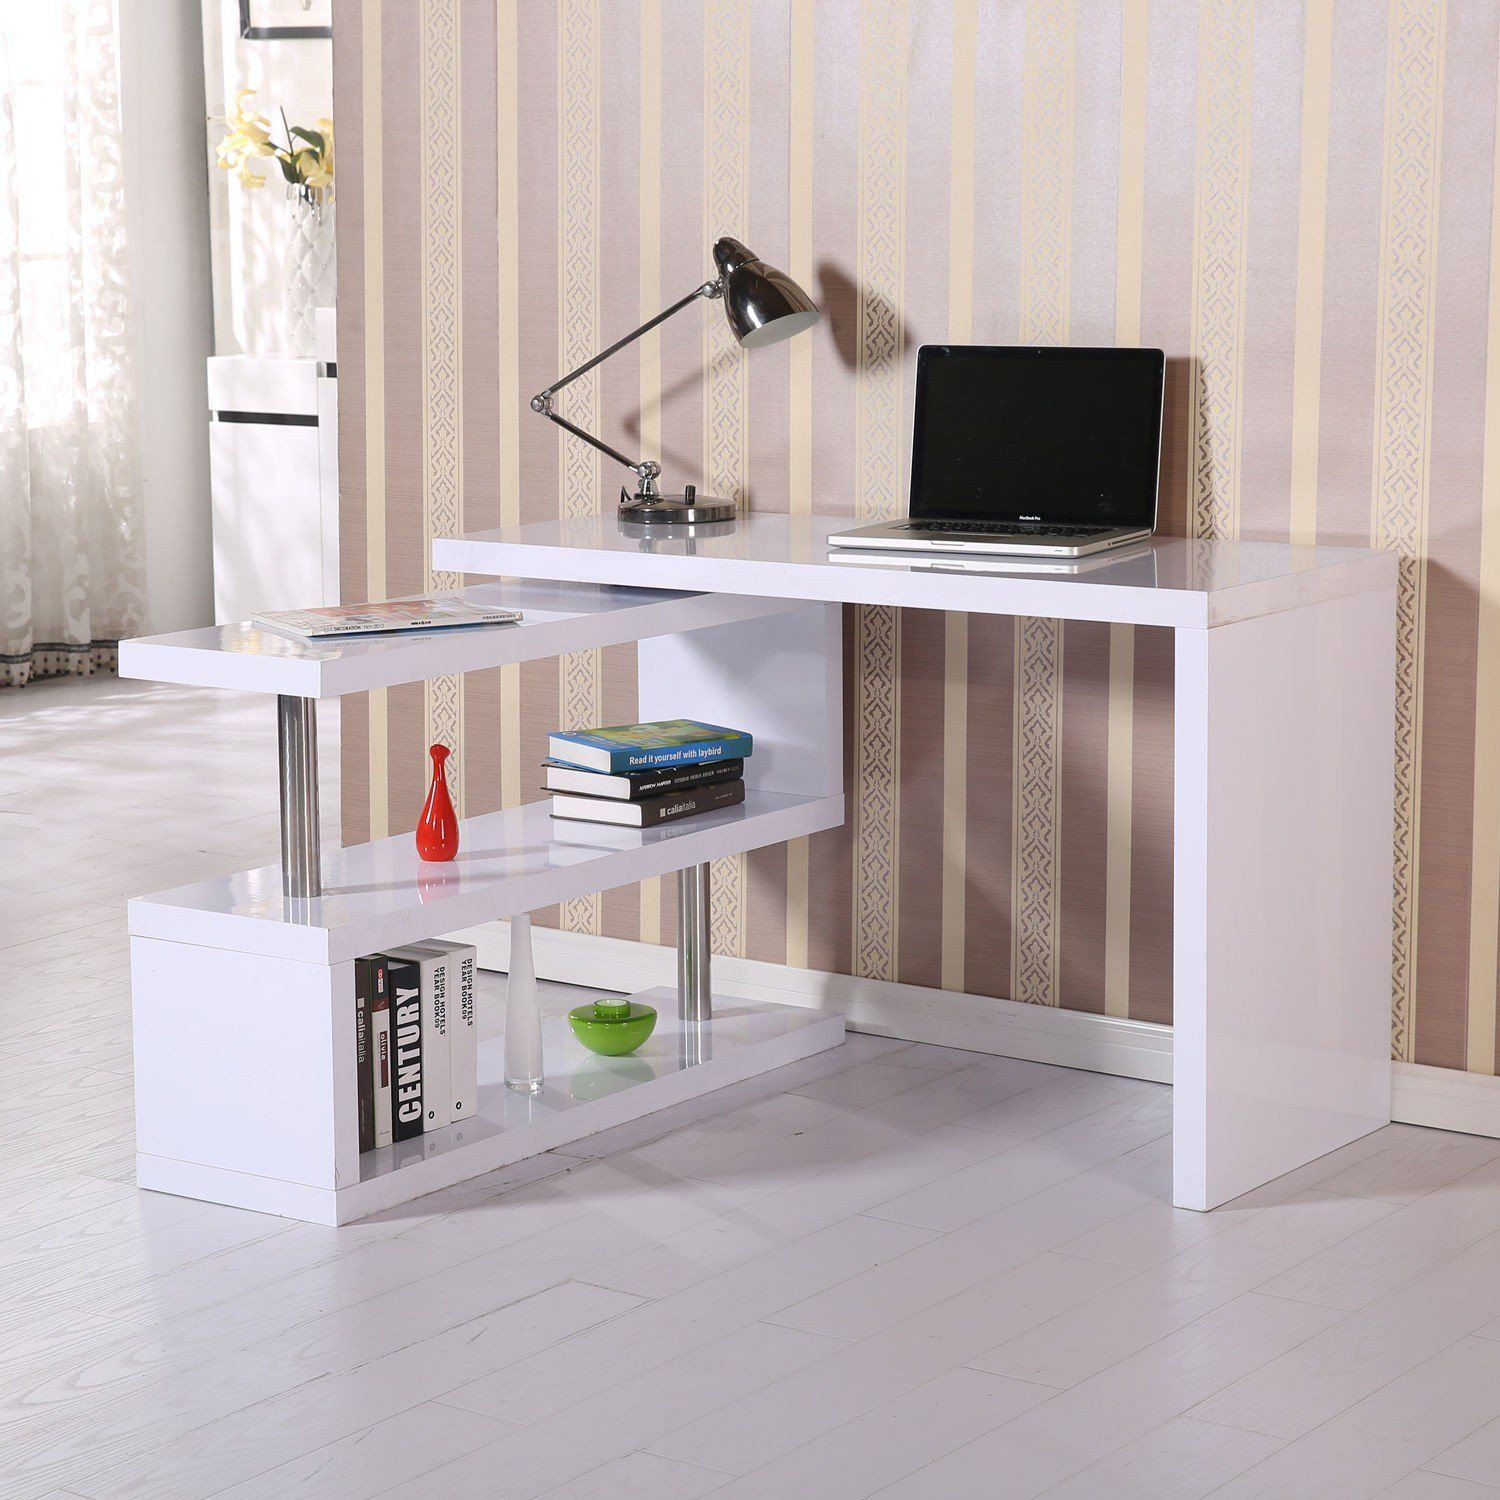 Pin By Freddy Siahaan Ttnt On Furniture Office Furniture Modern Home Office Furniture Desk Shelves